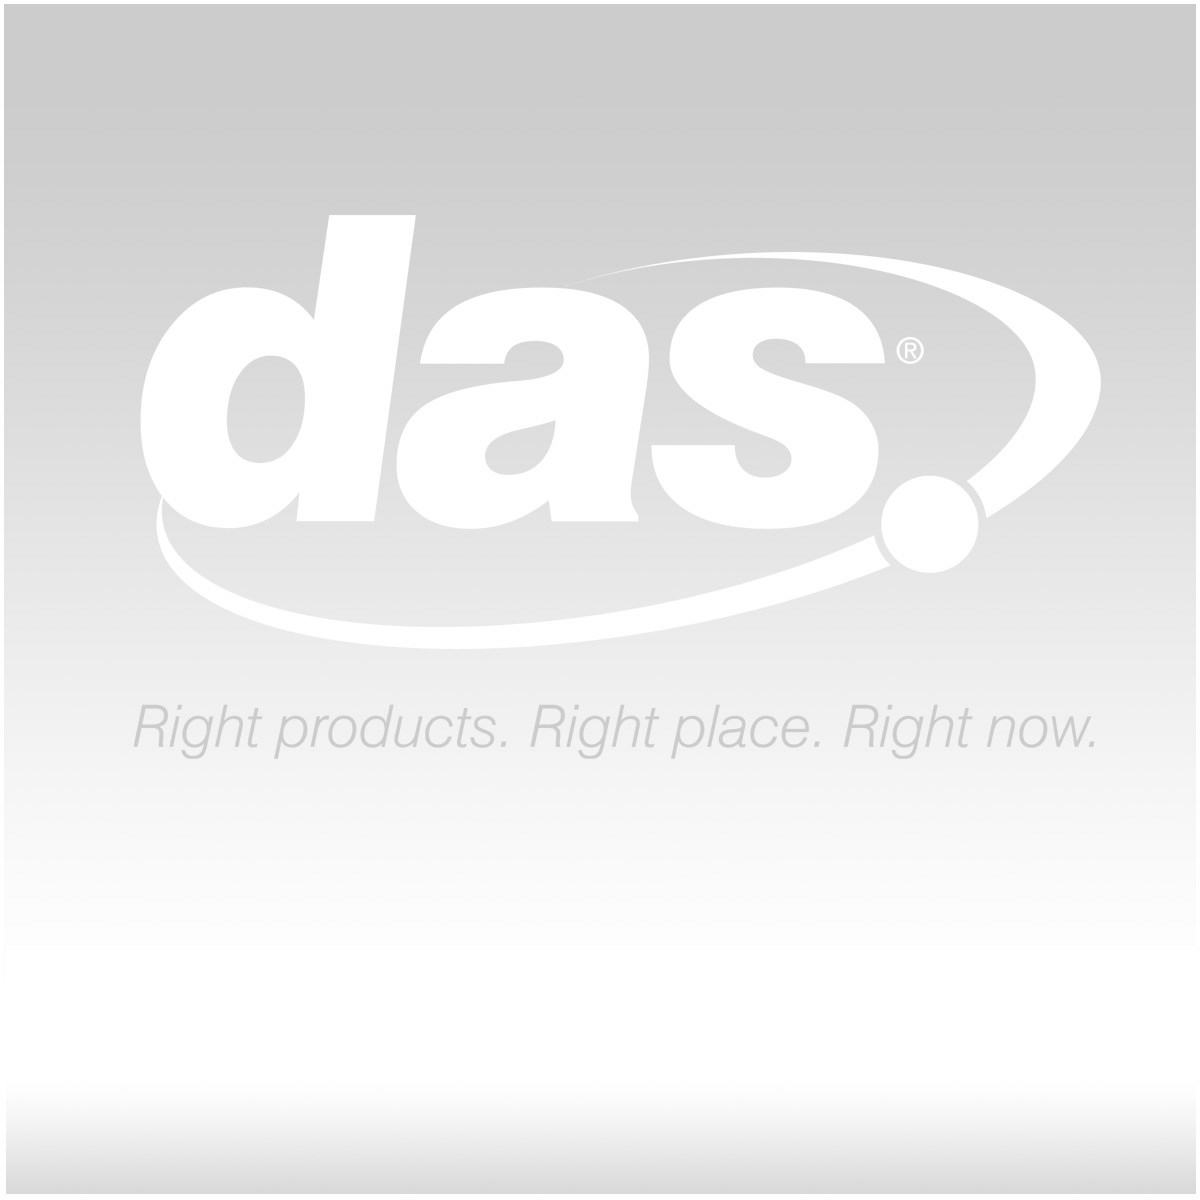 DAS Trade Shows and Events Head